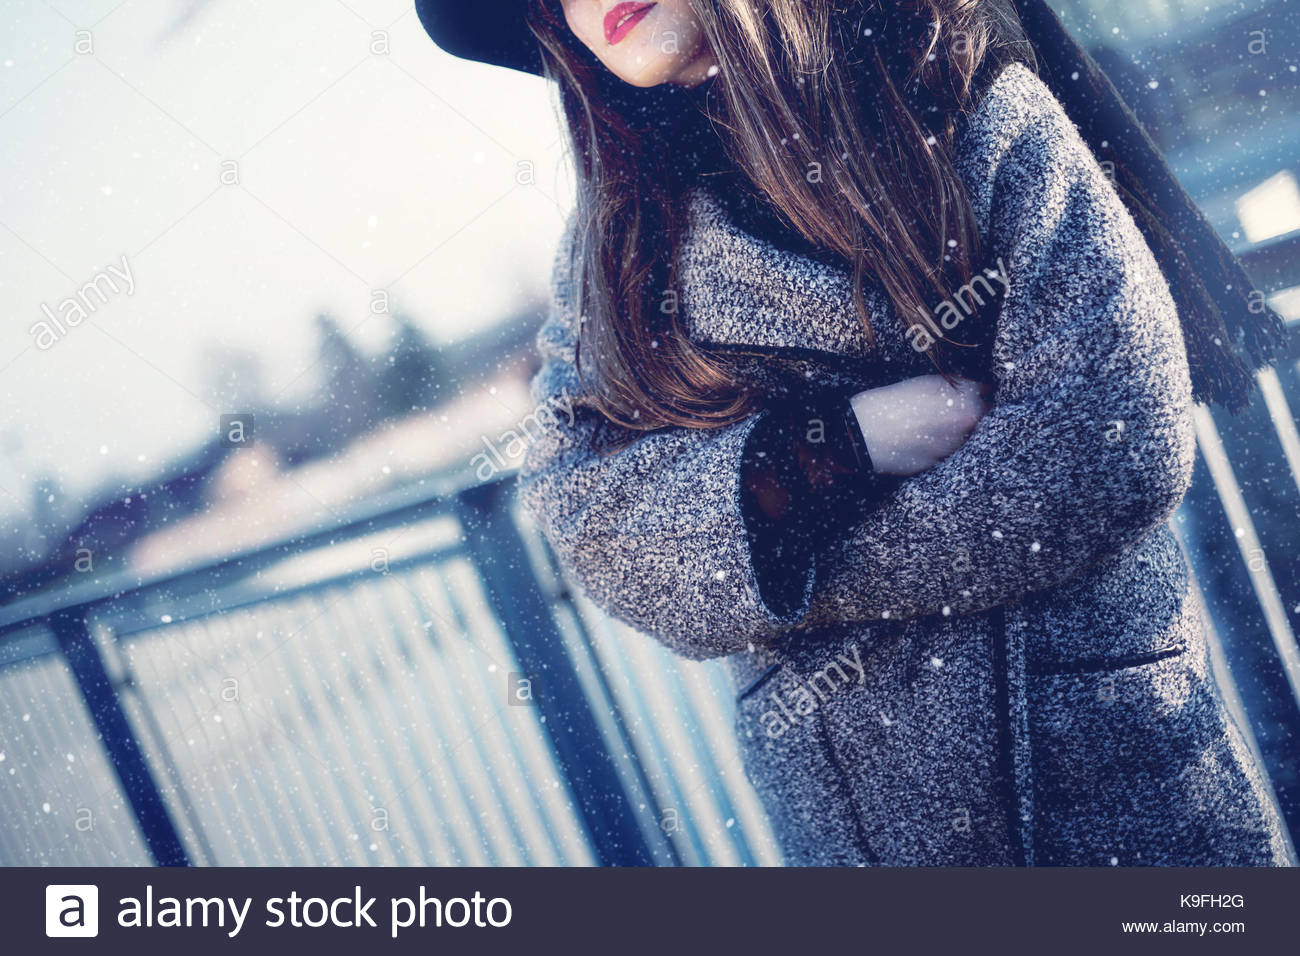 Girl in a snowstorm. Face not showing. - Stock Image